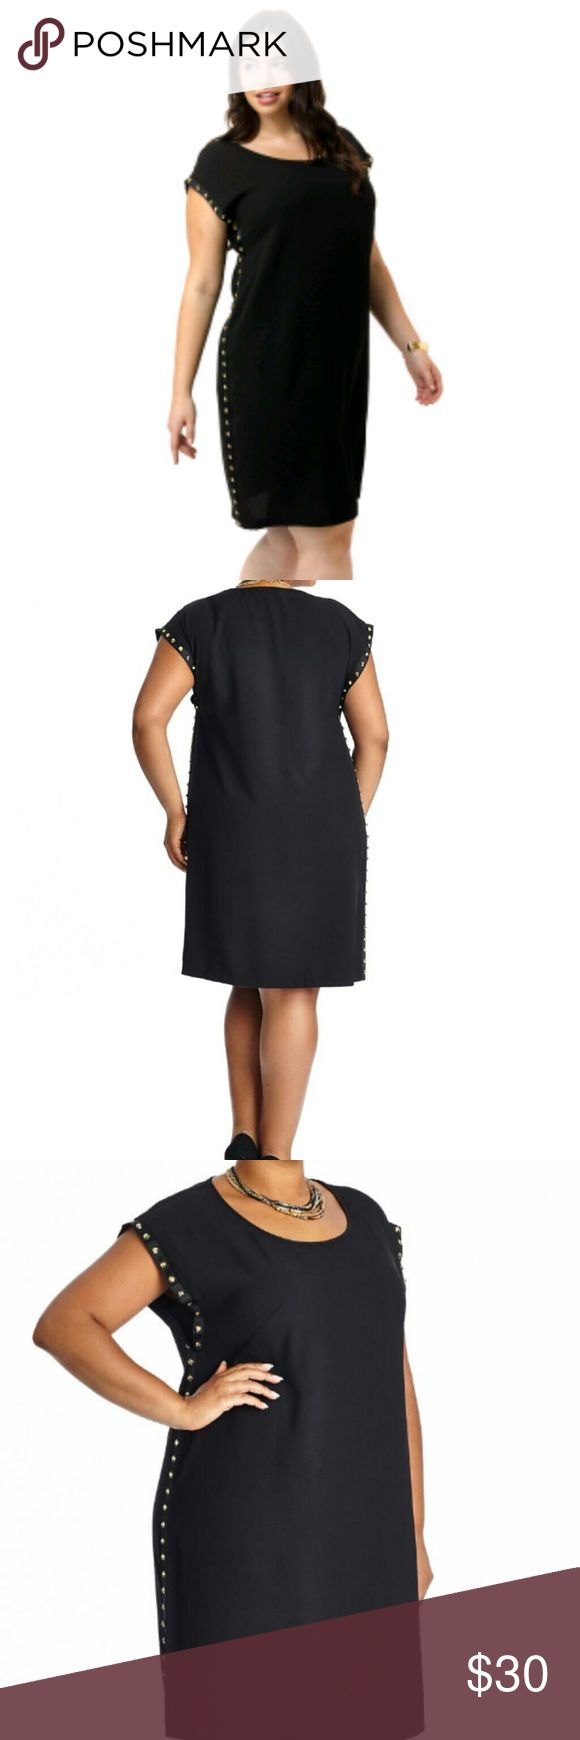 Mode mix studded shift dress Stud embellishments march up the sides of a classic shift silhouette, rendered in elegant crepe. Round necklineShort sleevesStudded details along both sidesLinedPolyester/spandexHand washImported.Boutique sales tag ONLY moda mix Dresses